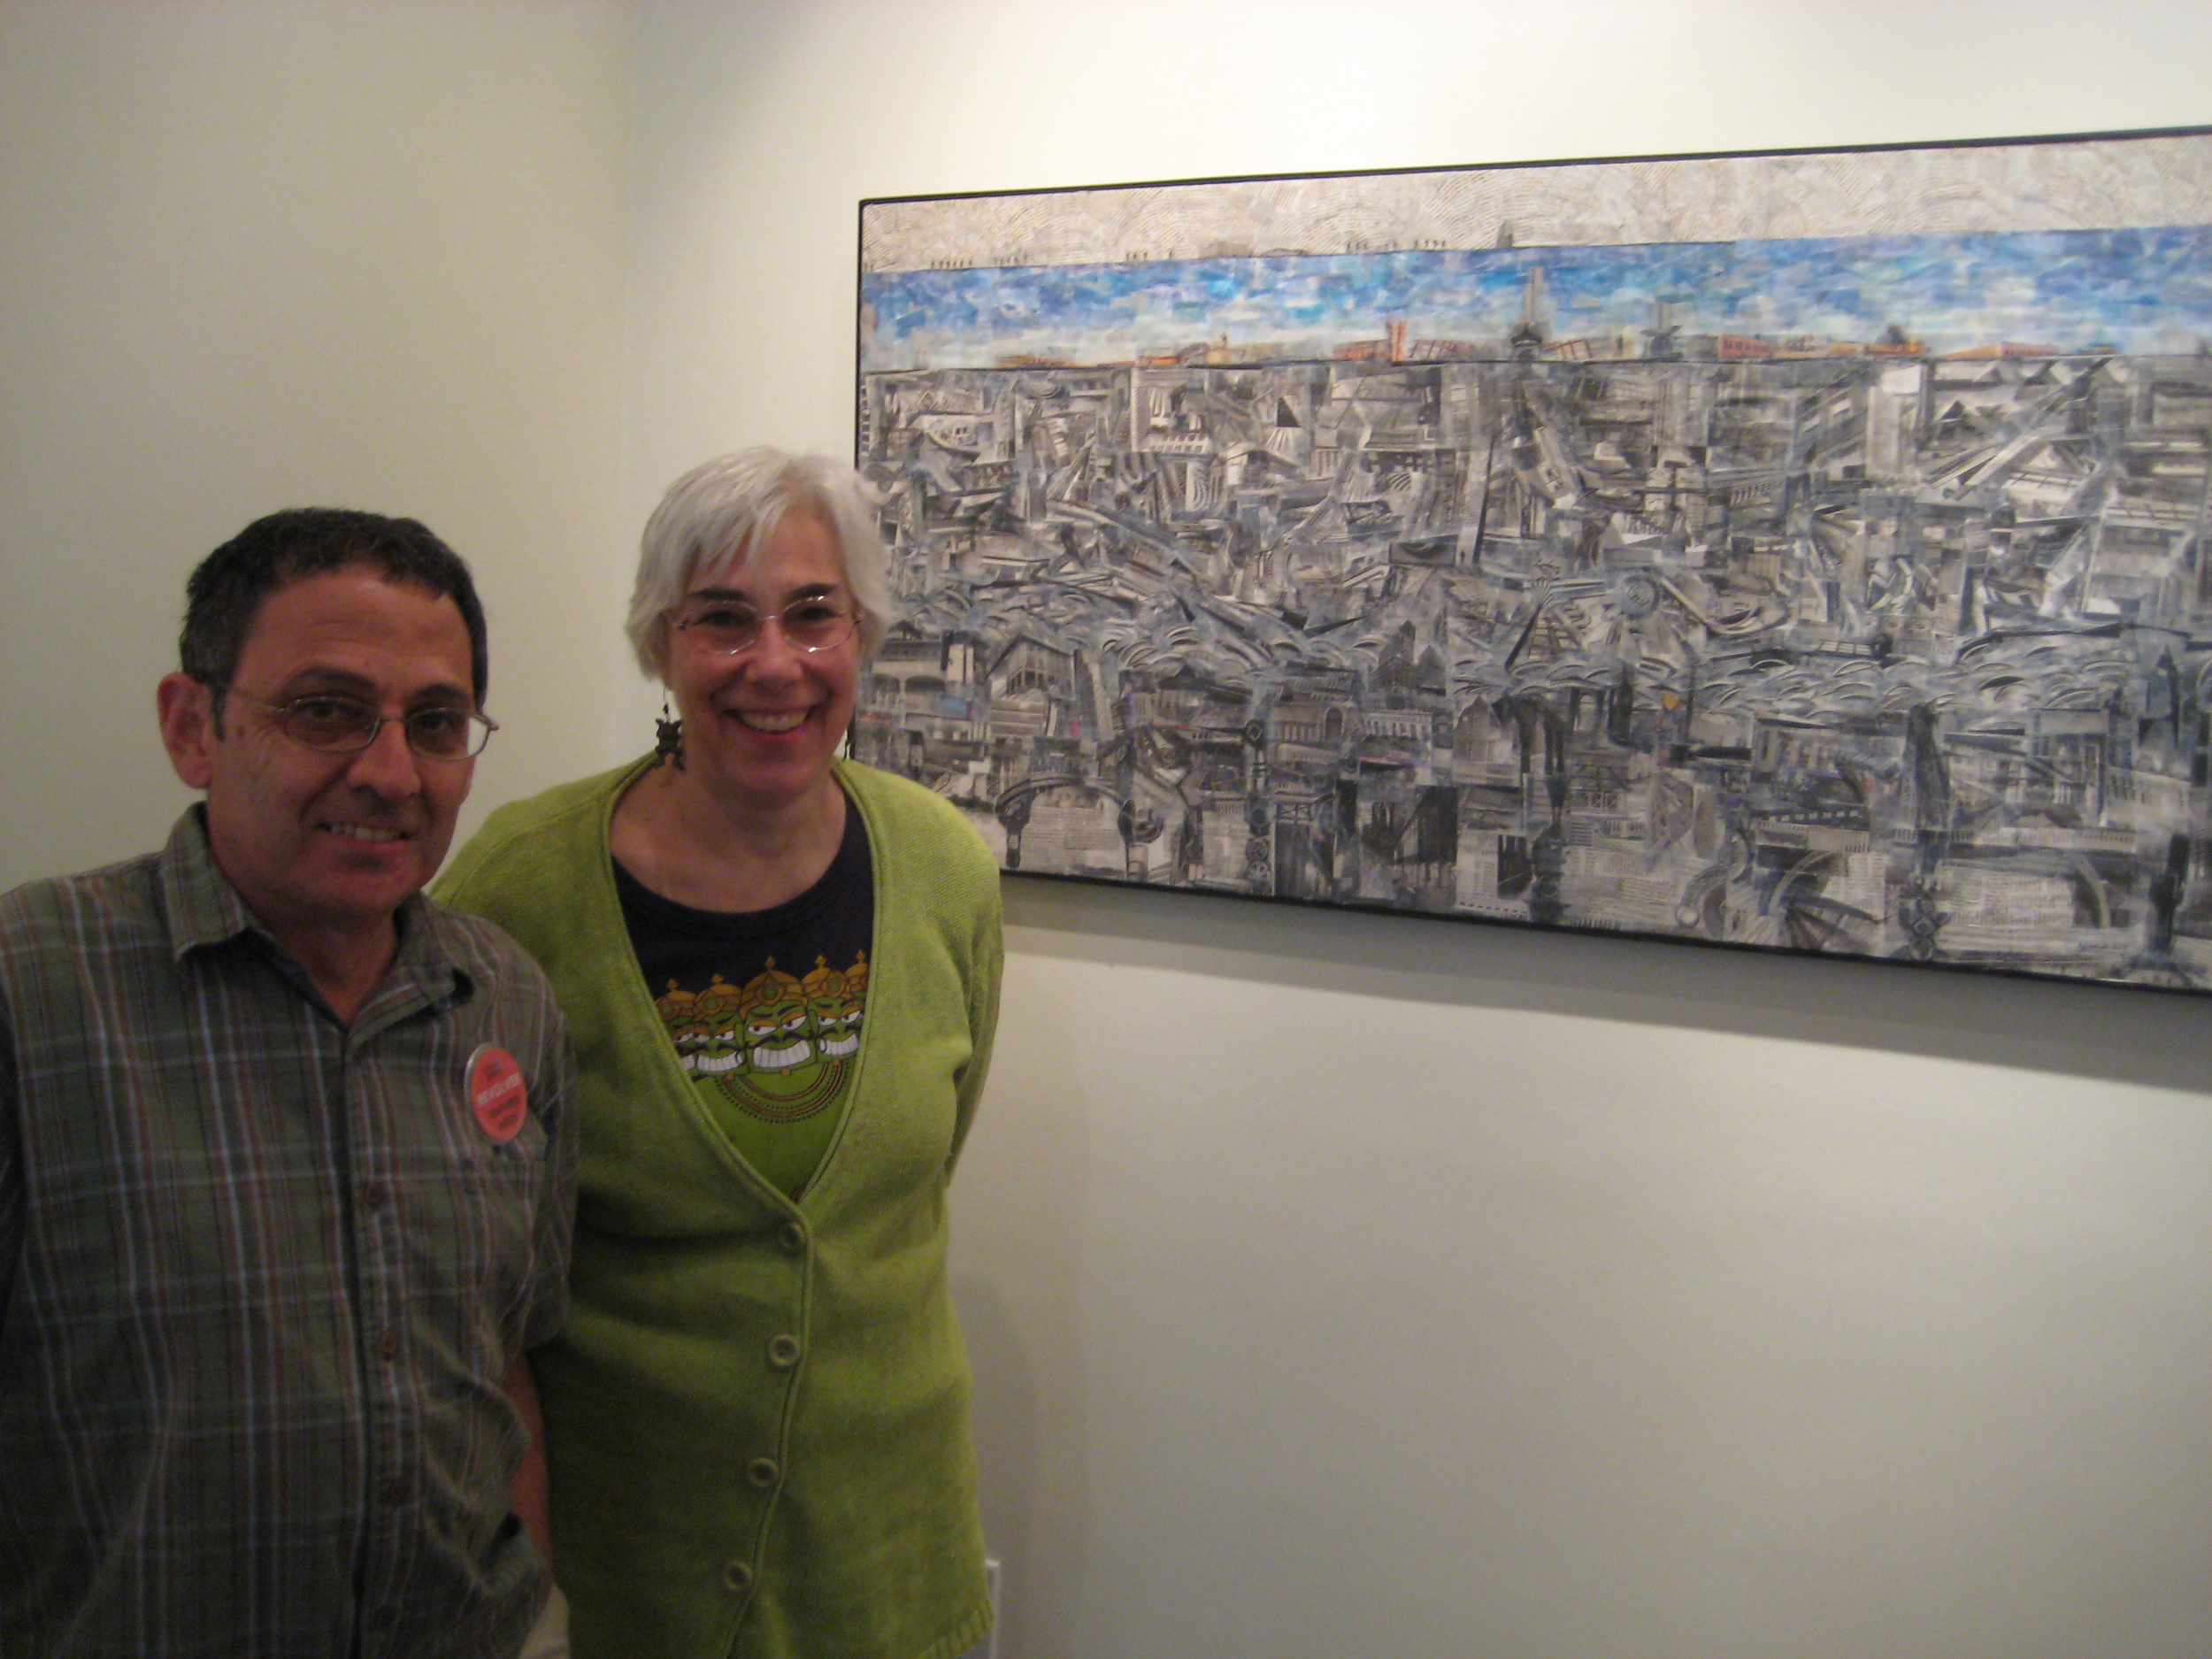 Revolver Artist Mohammed Daoudi and his wife in front of his work